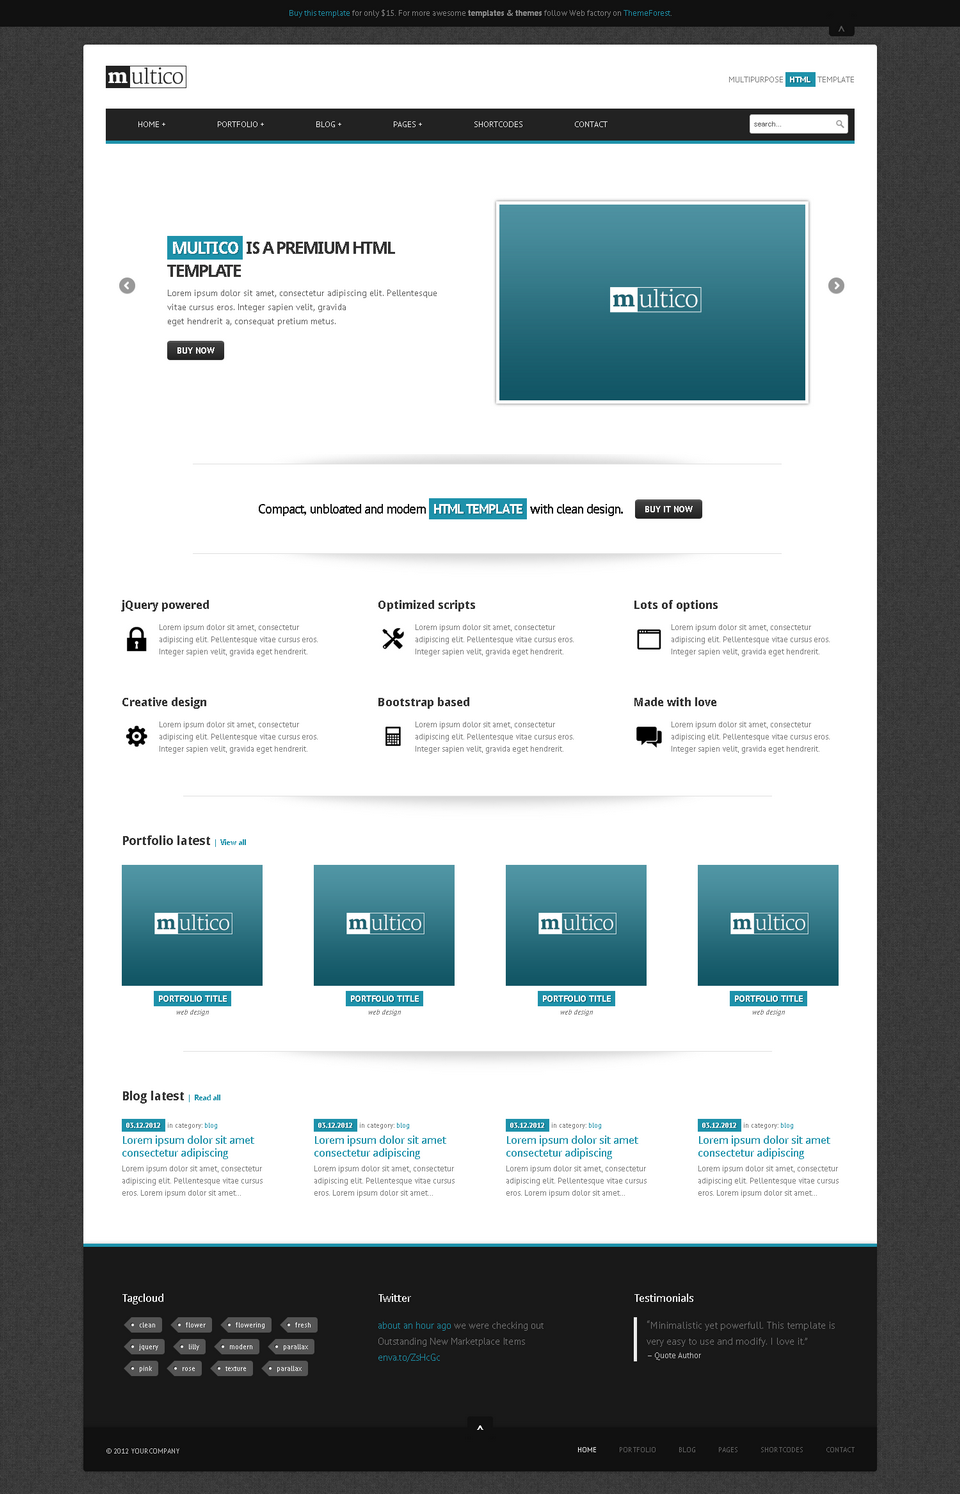 Multico - Premium Multipurpose Responsive Template - Multico - front page with parallax slider